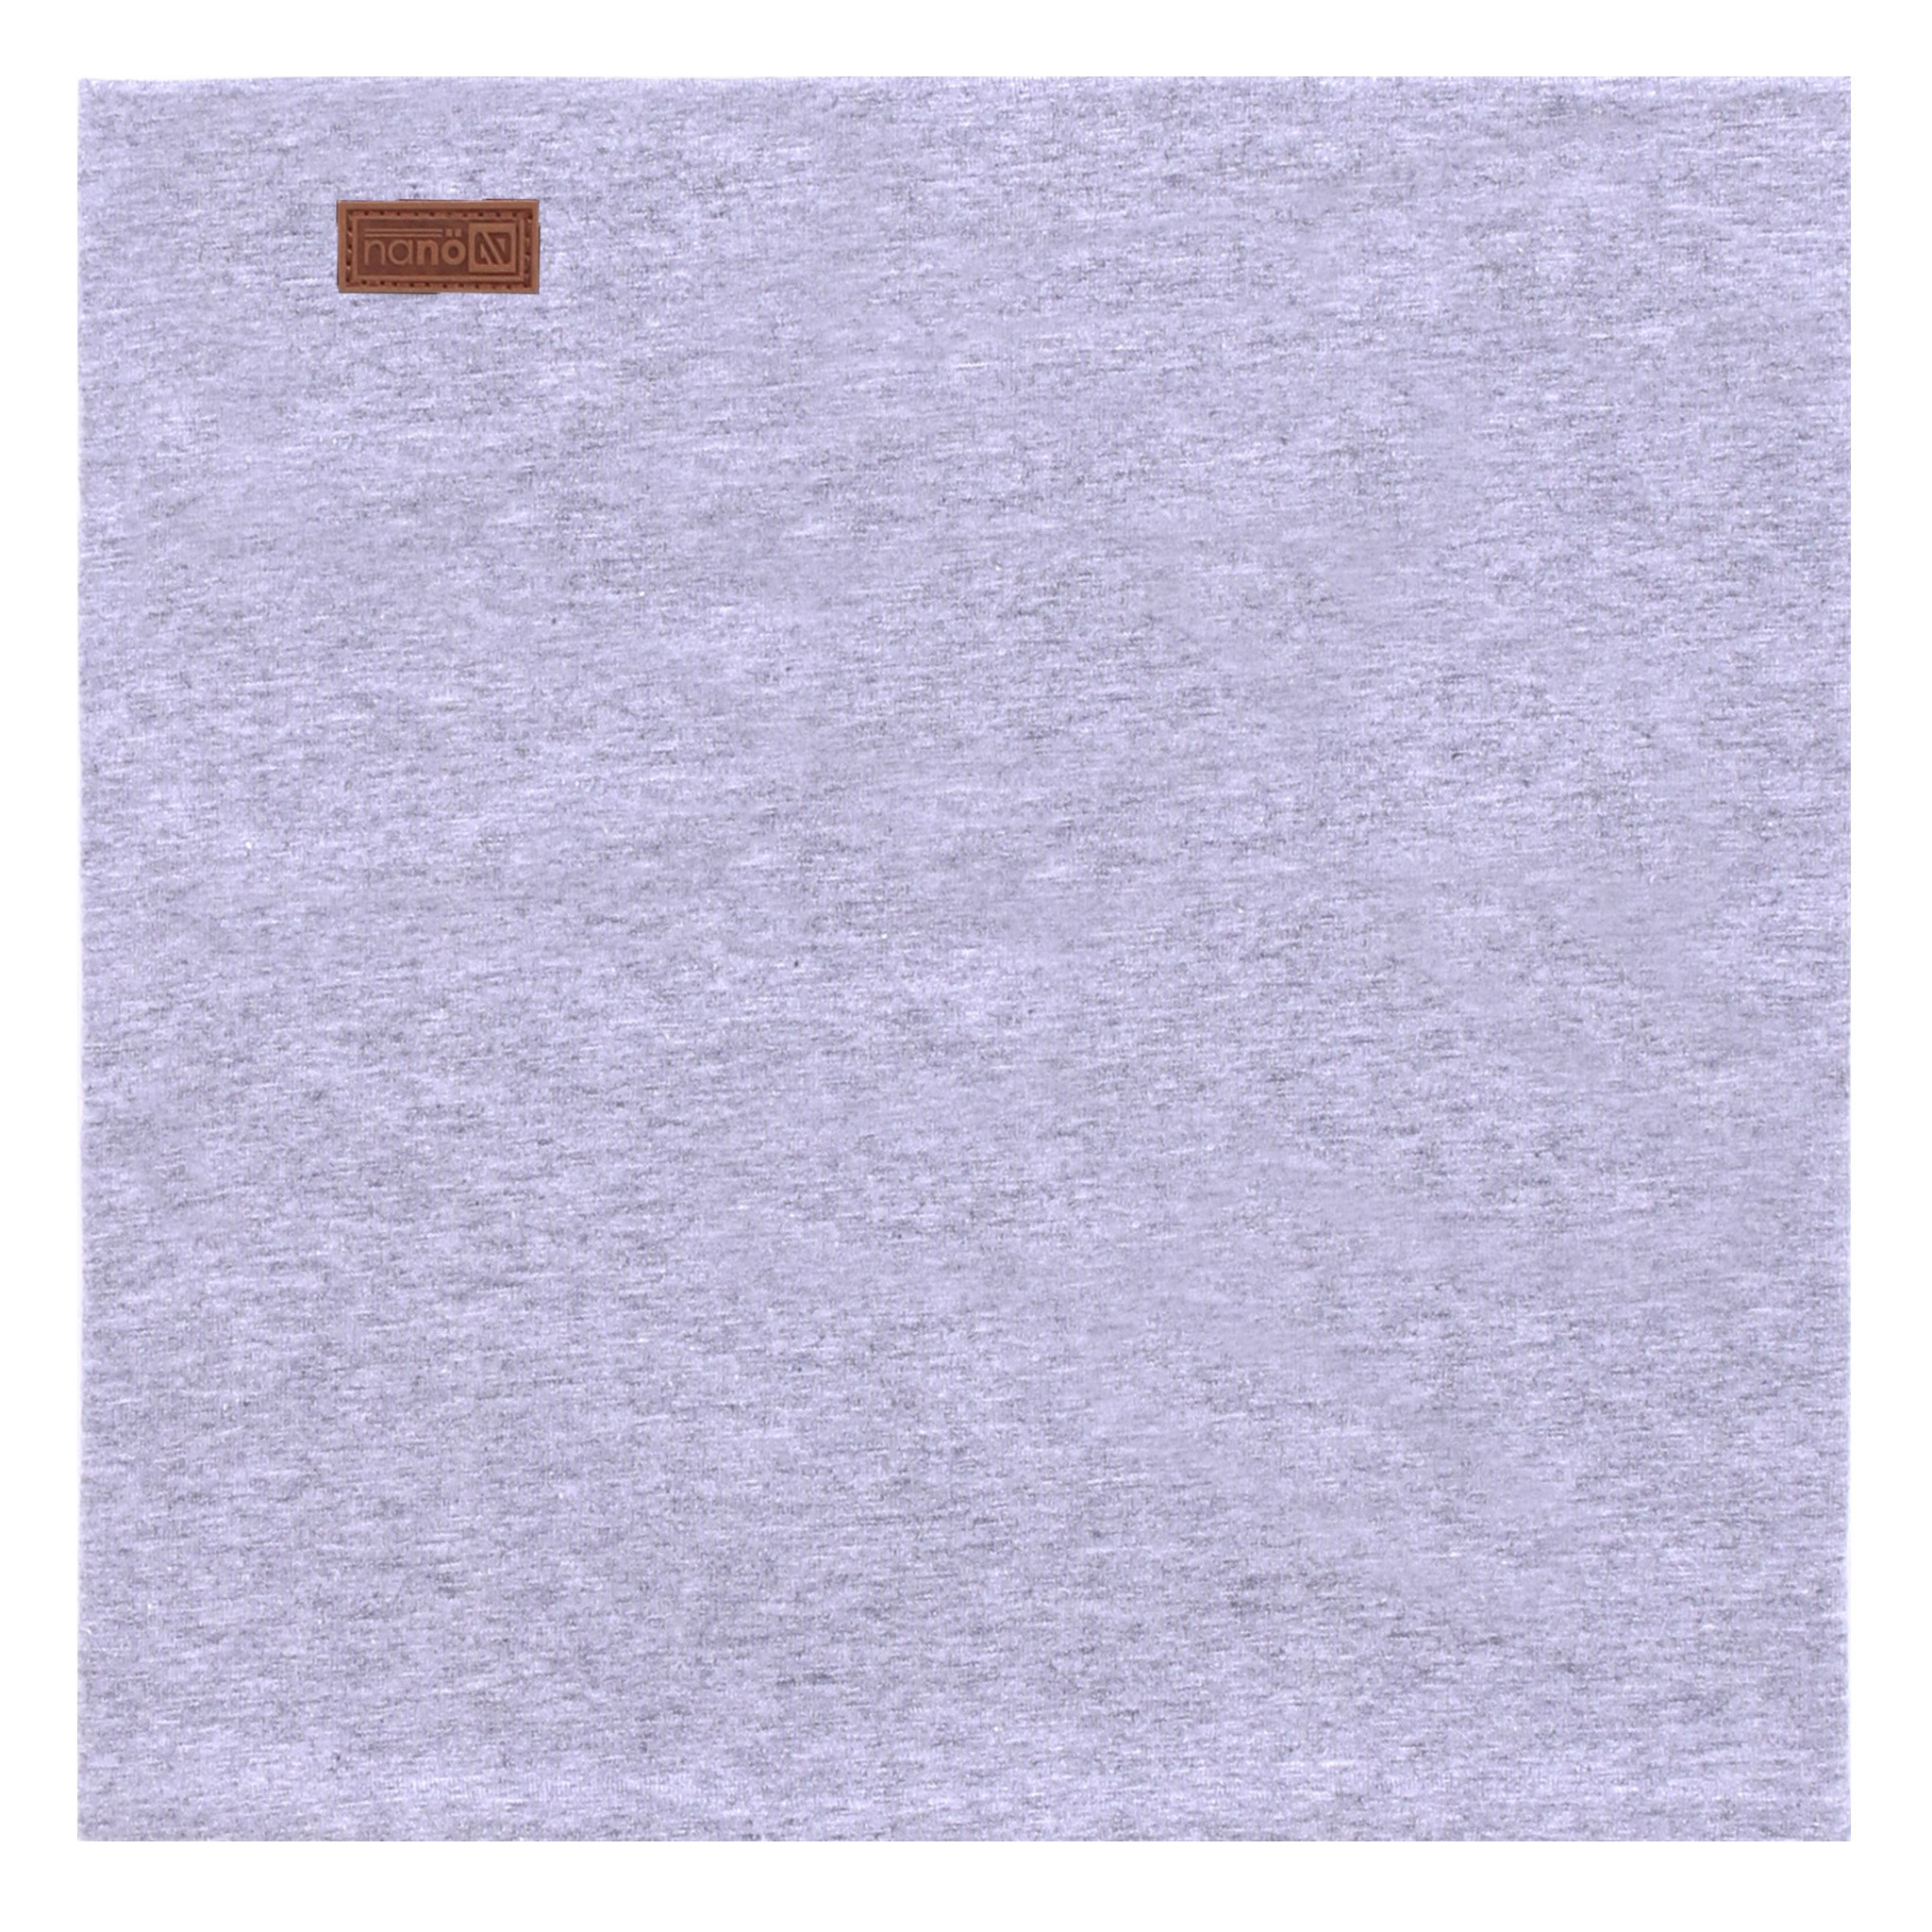 bcacj210-s19_gray_mix